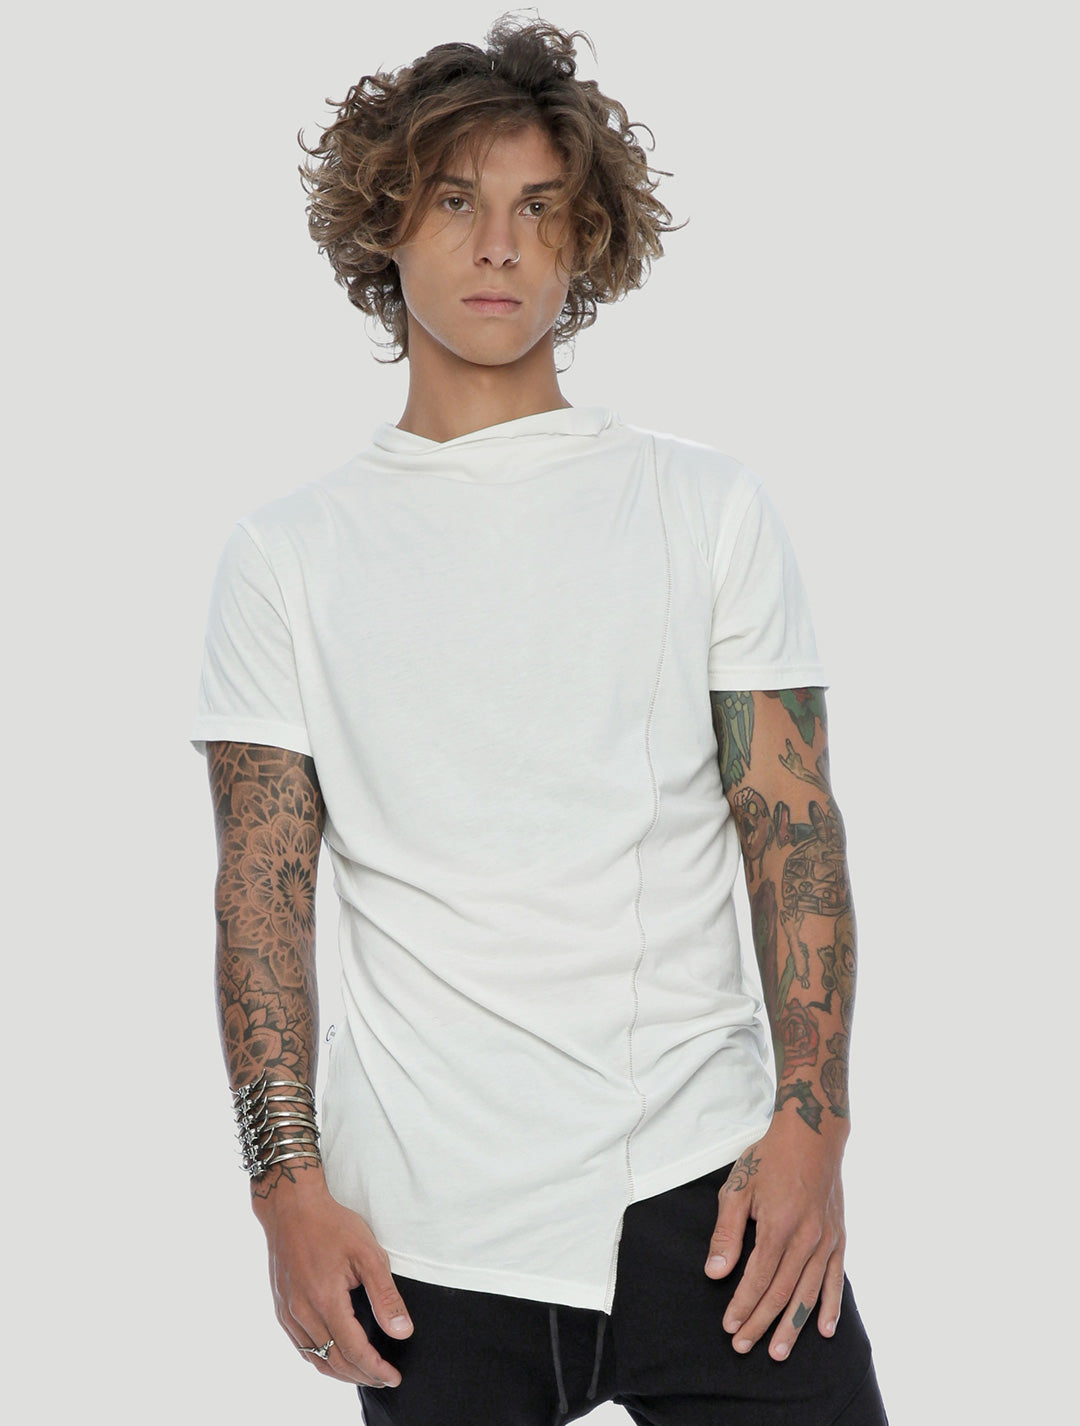 White Tulle Asymmetric Tee by Psylo Fashion